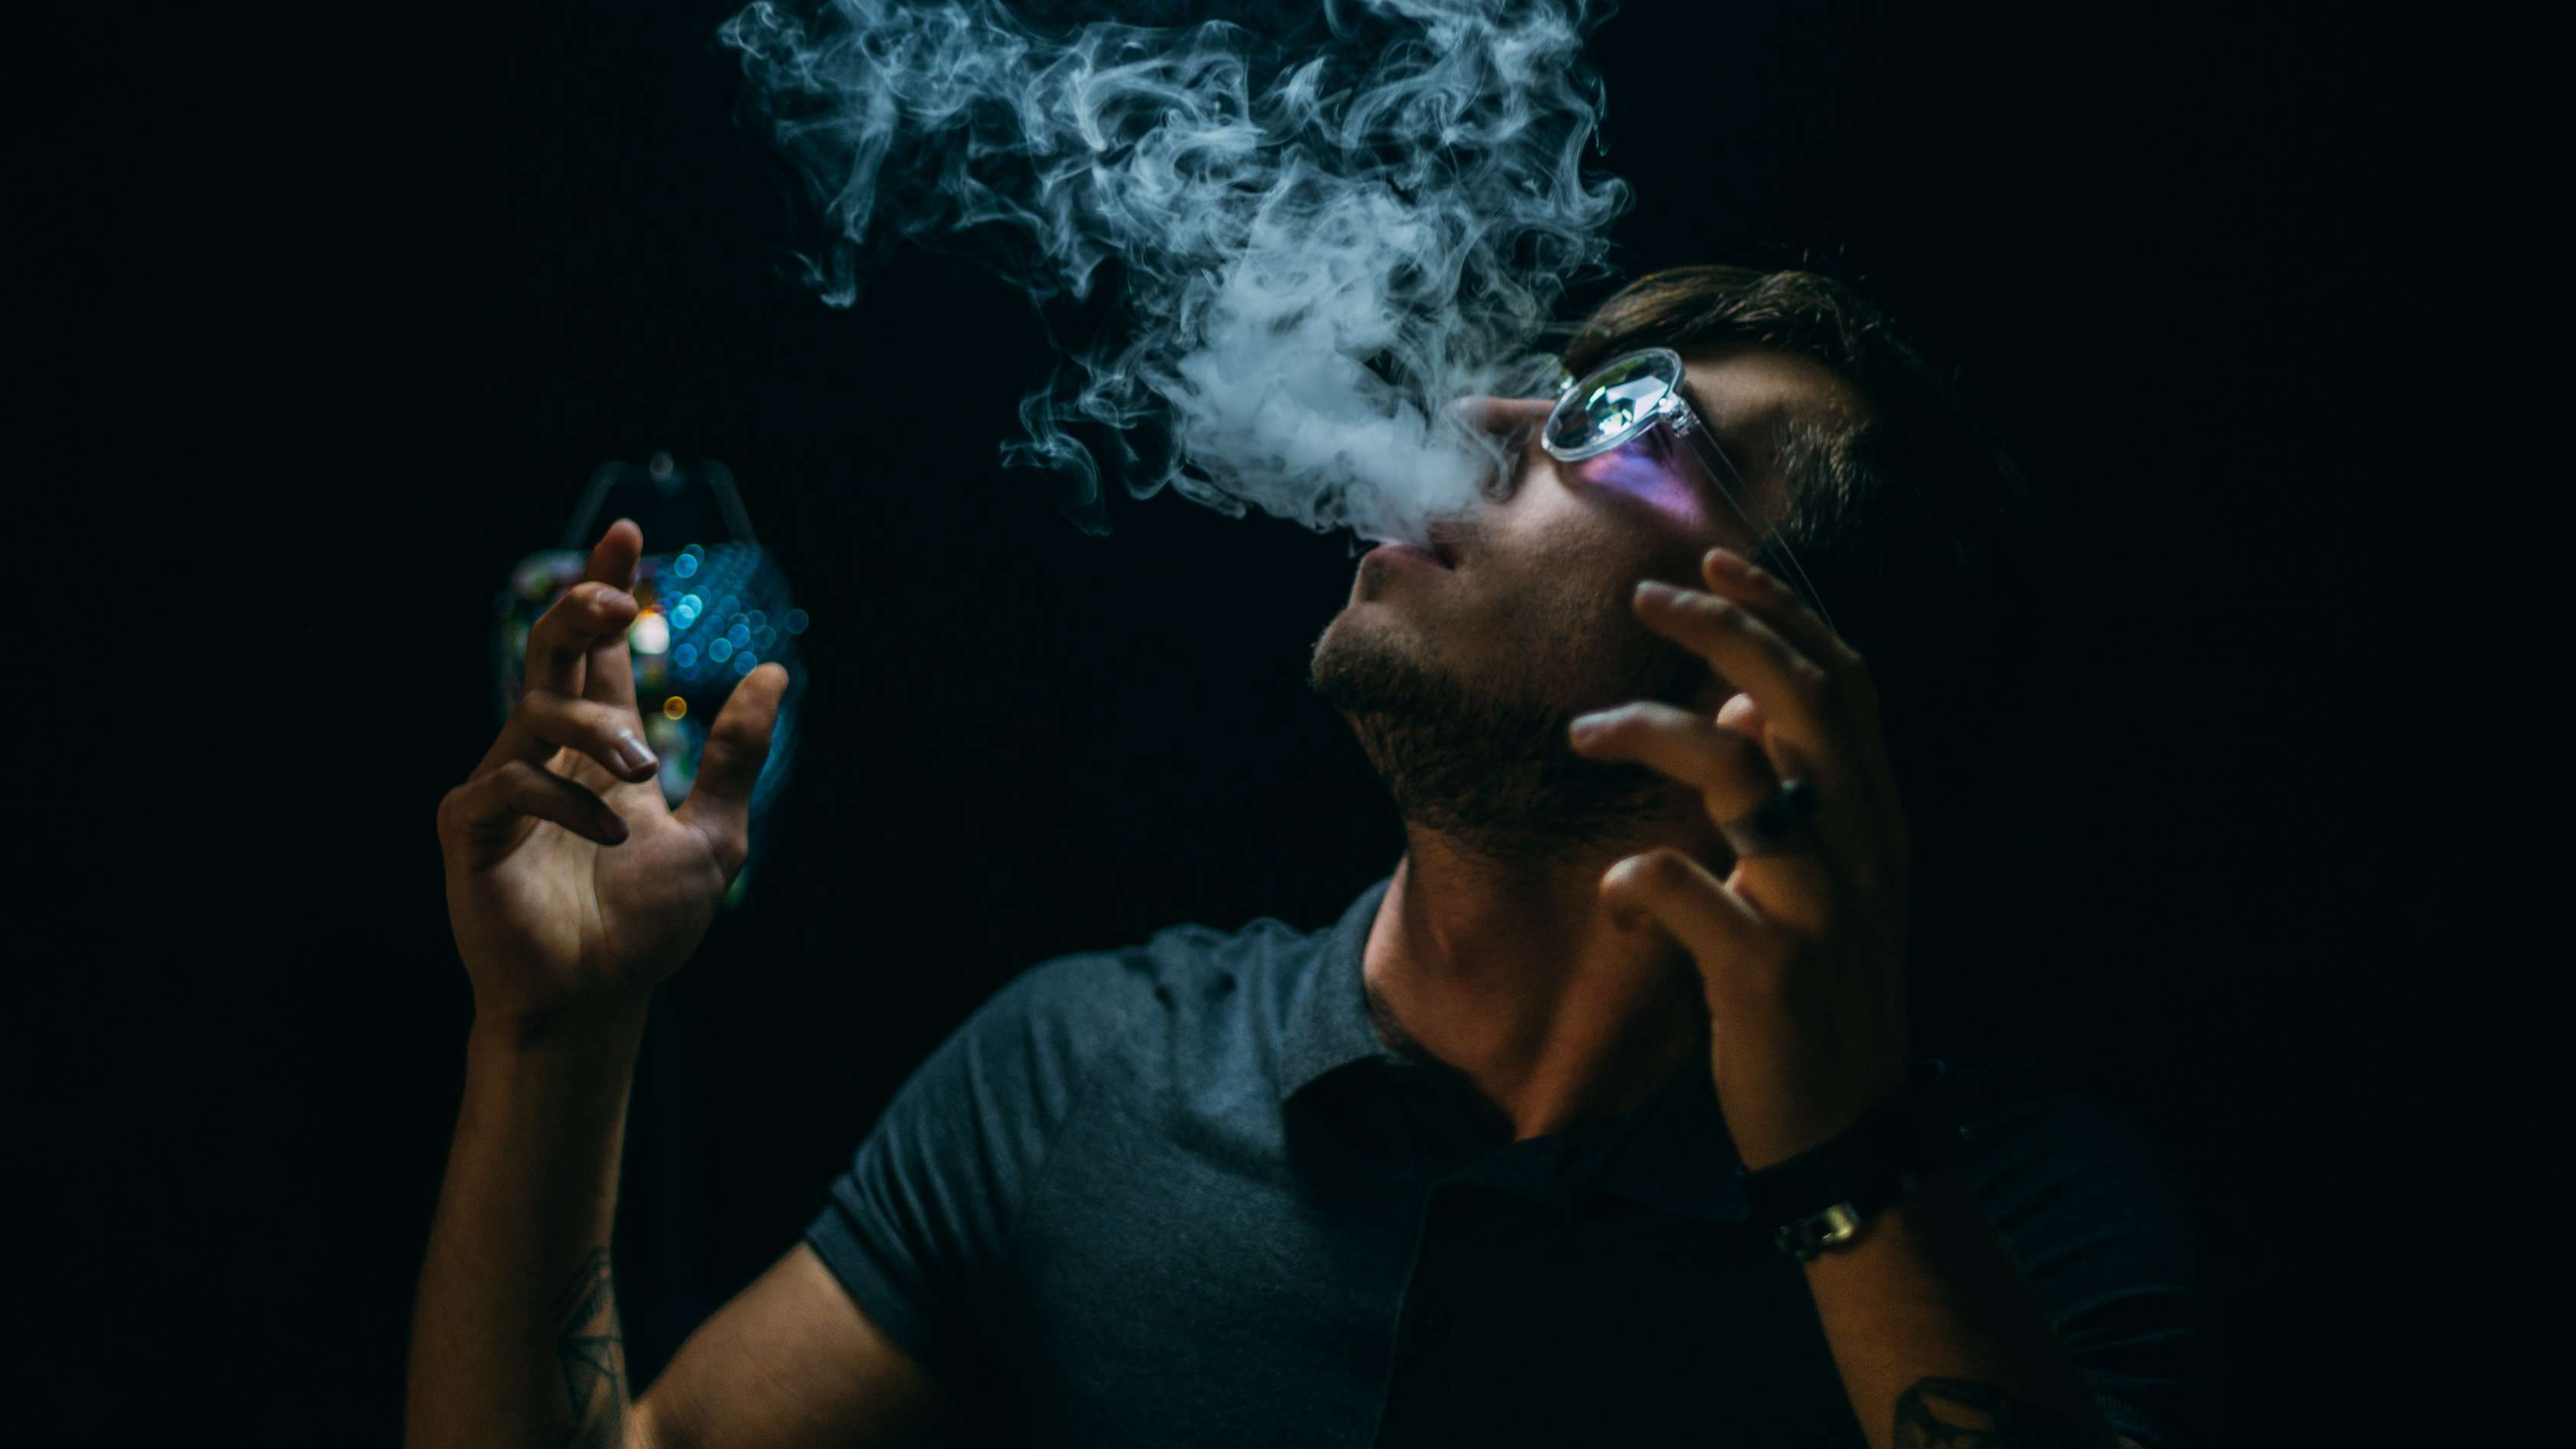 Get Paid to Smoke Weed - Featured Image